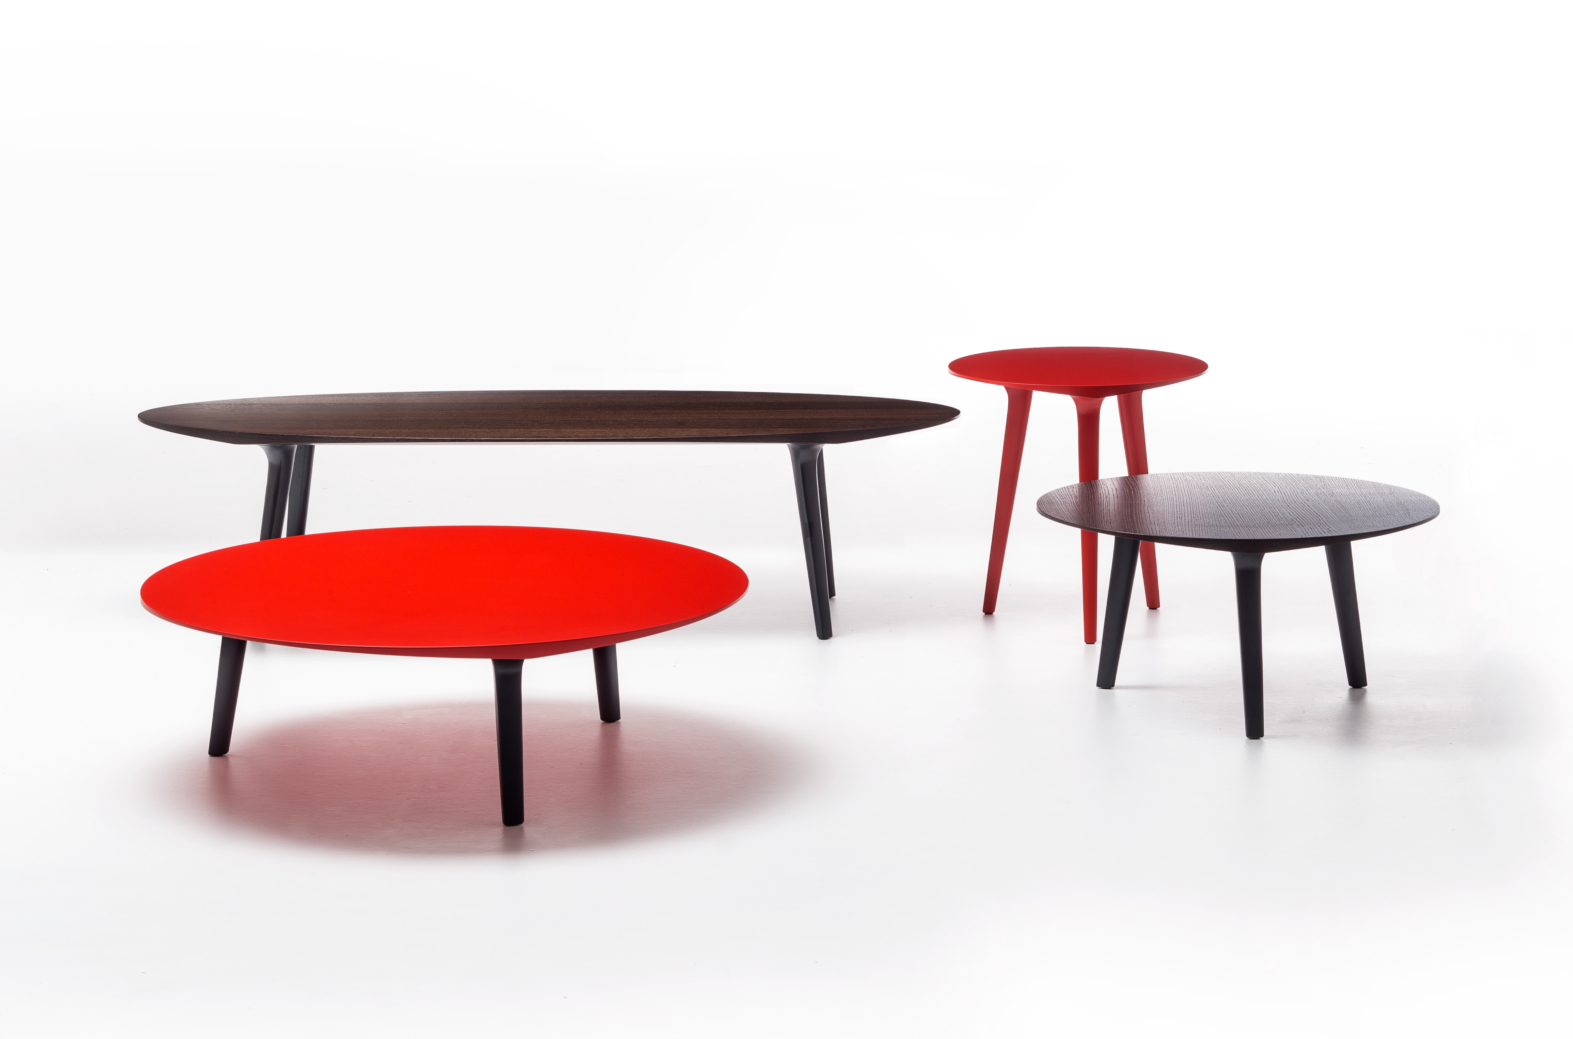 ADEMAR Tables by Giulio Iacchetti for Bross